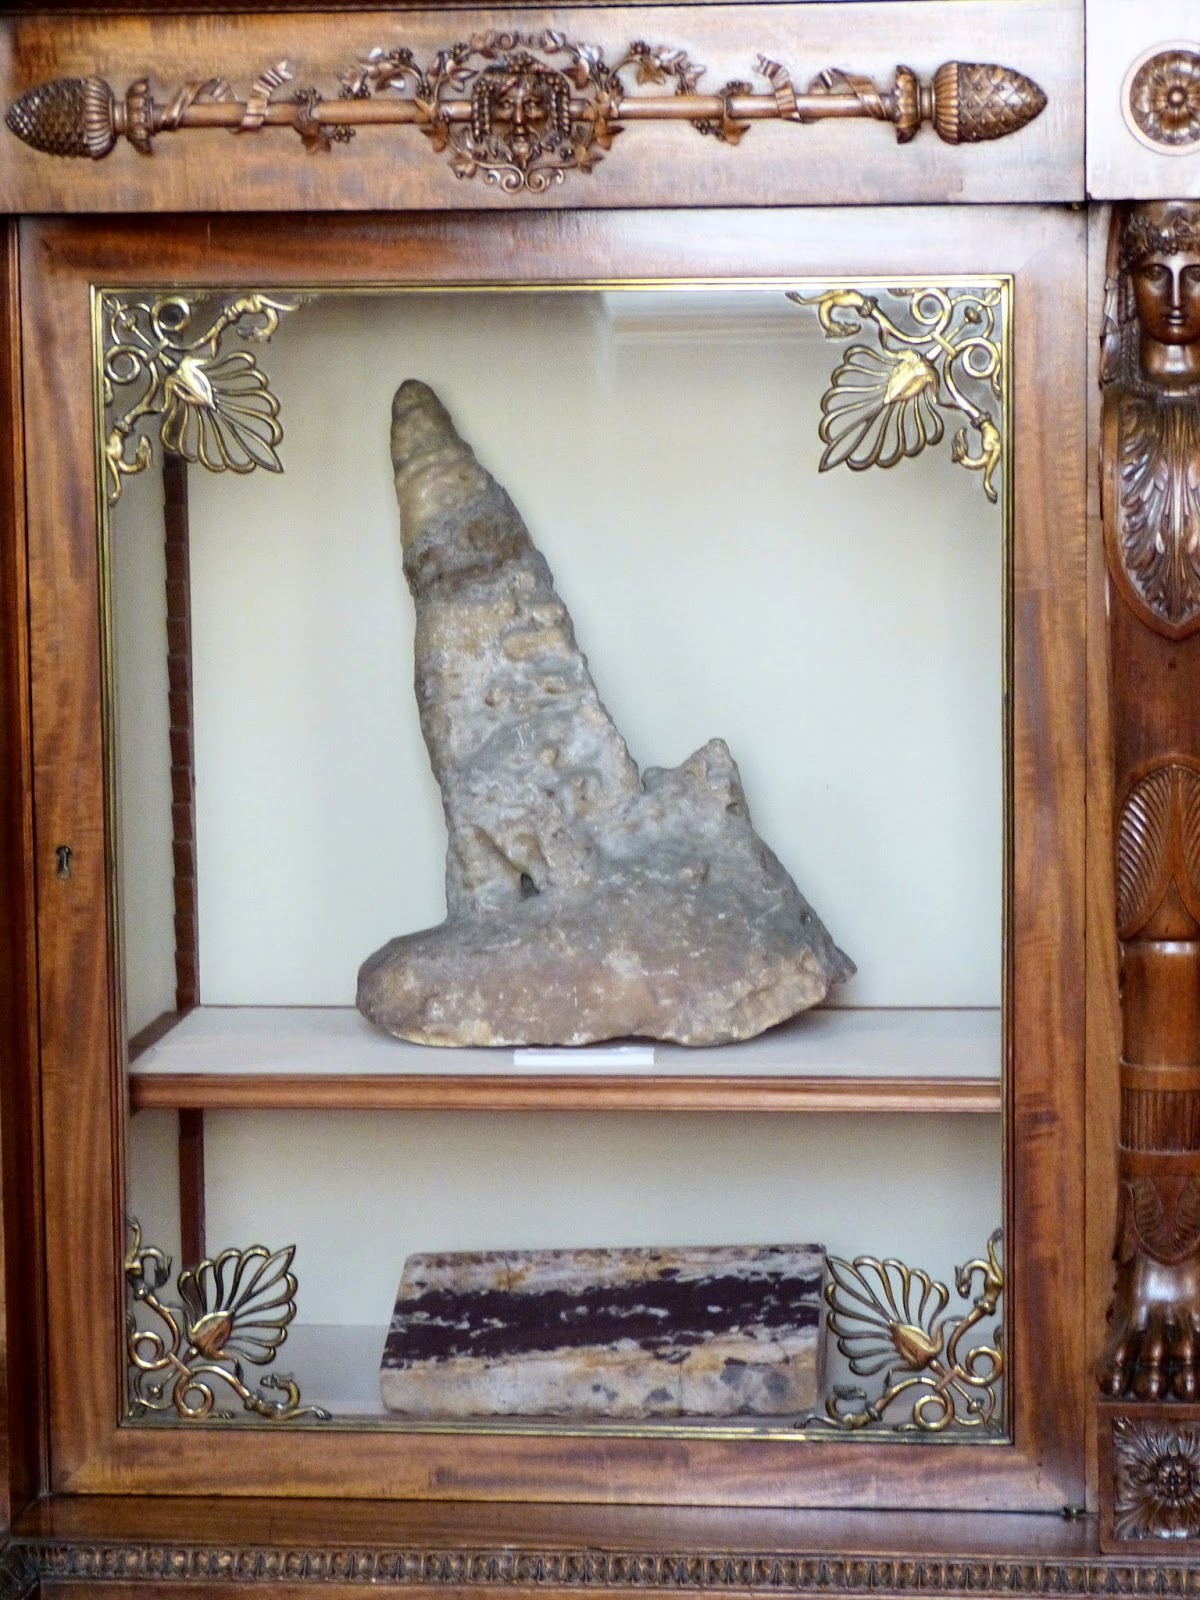 Part of the mineral collection on display  in the South Sketch Gallery, Chatsworth